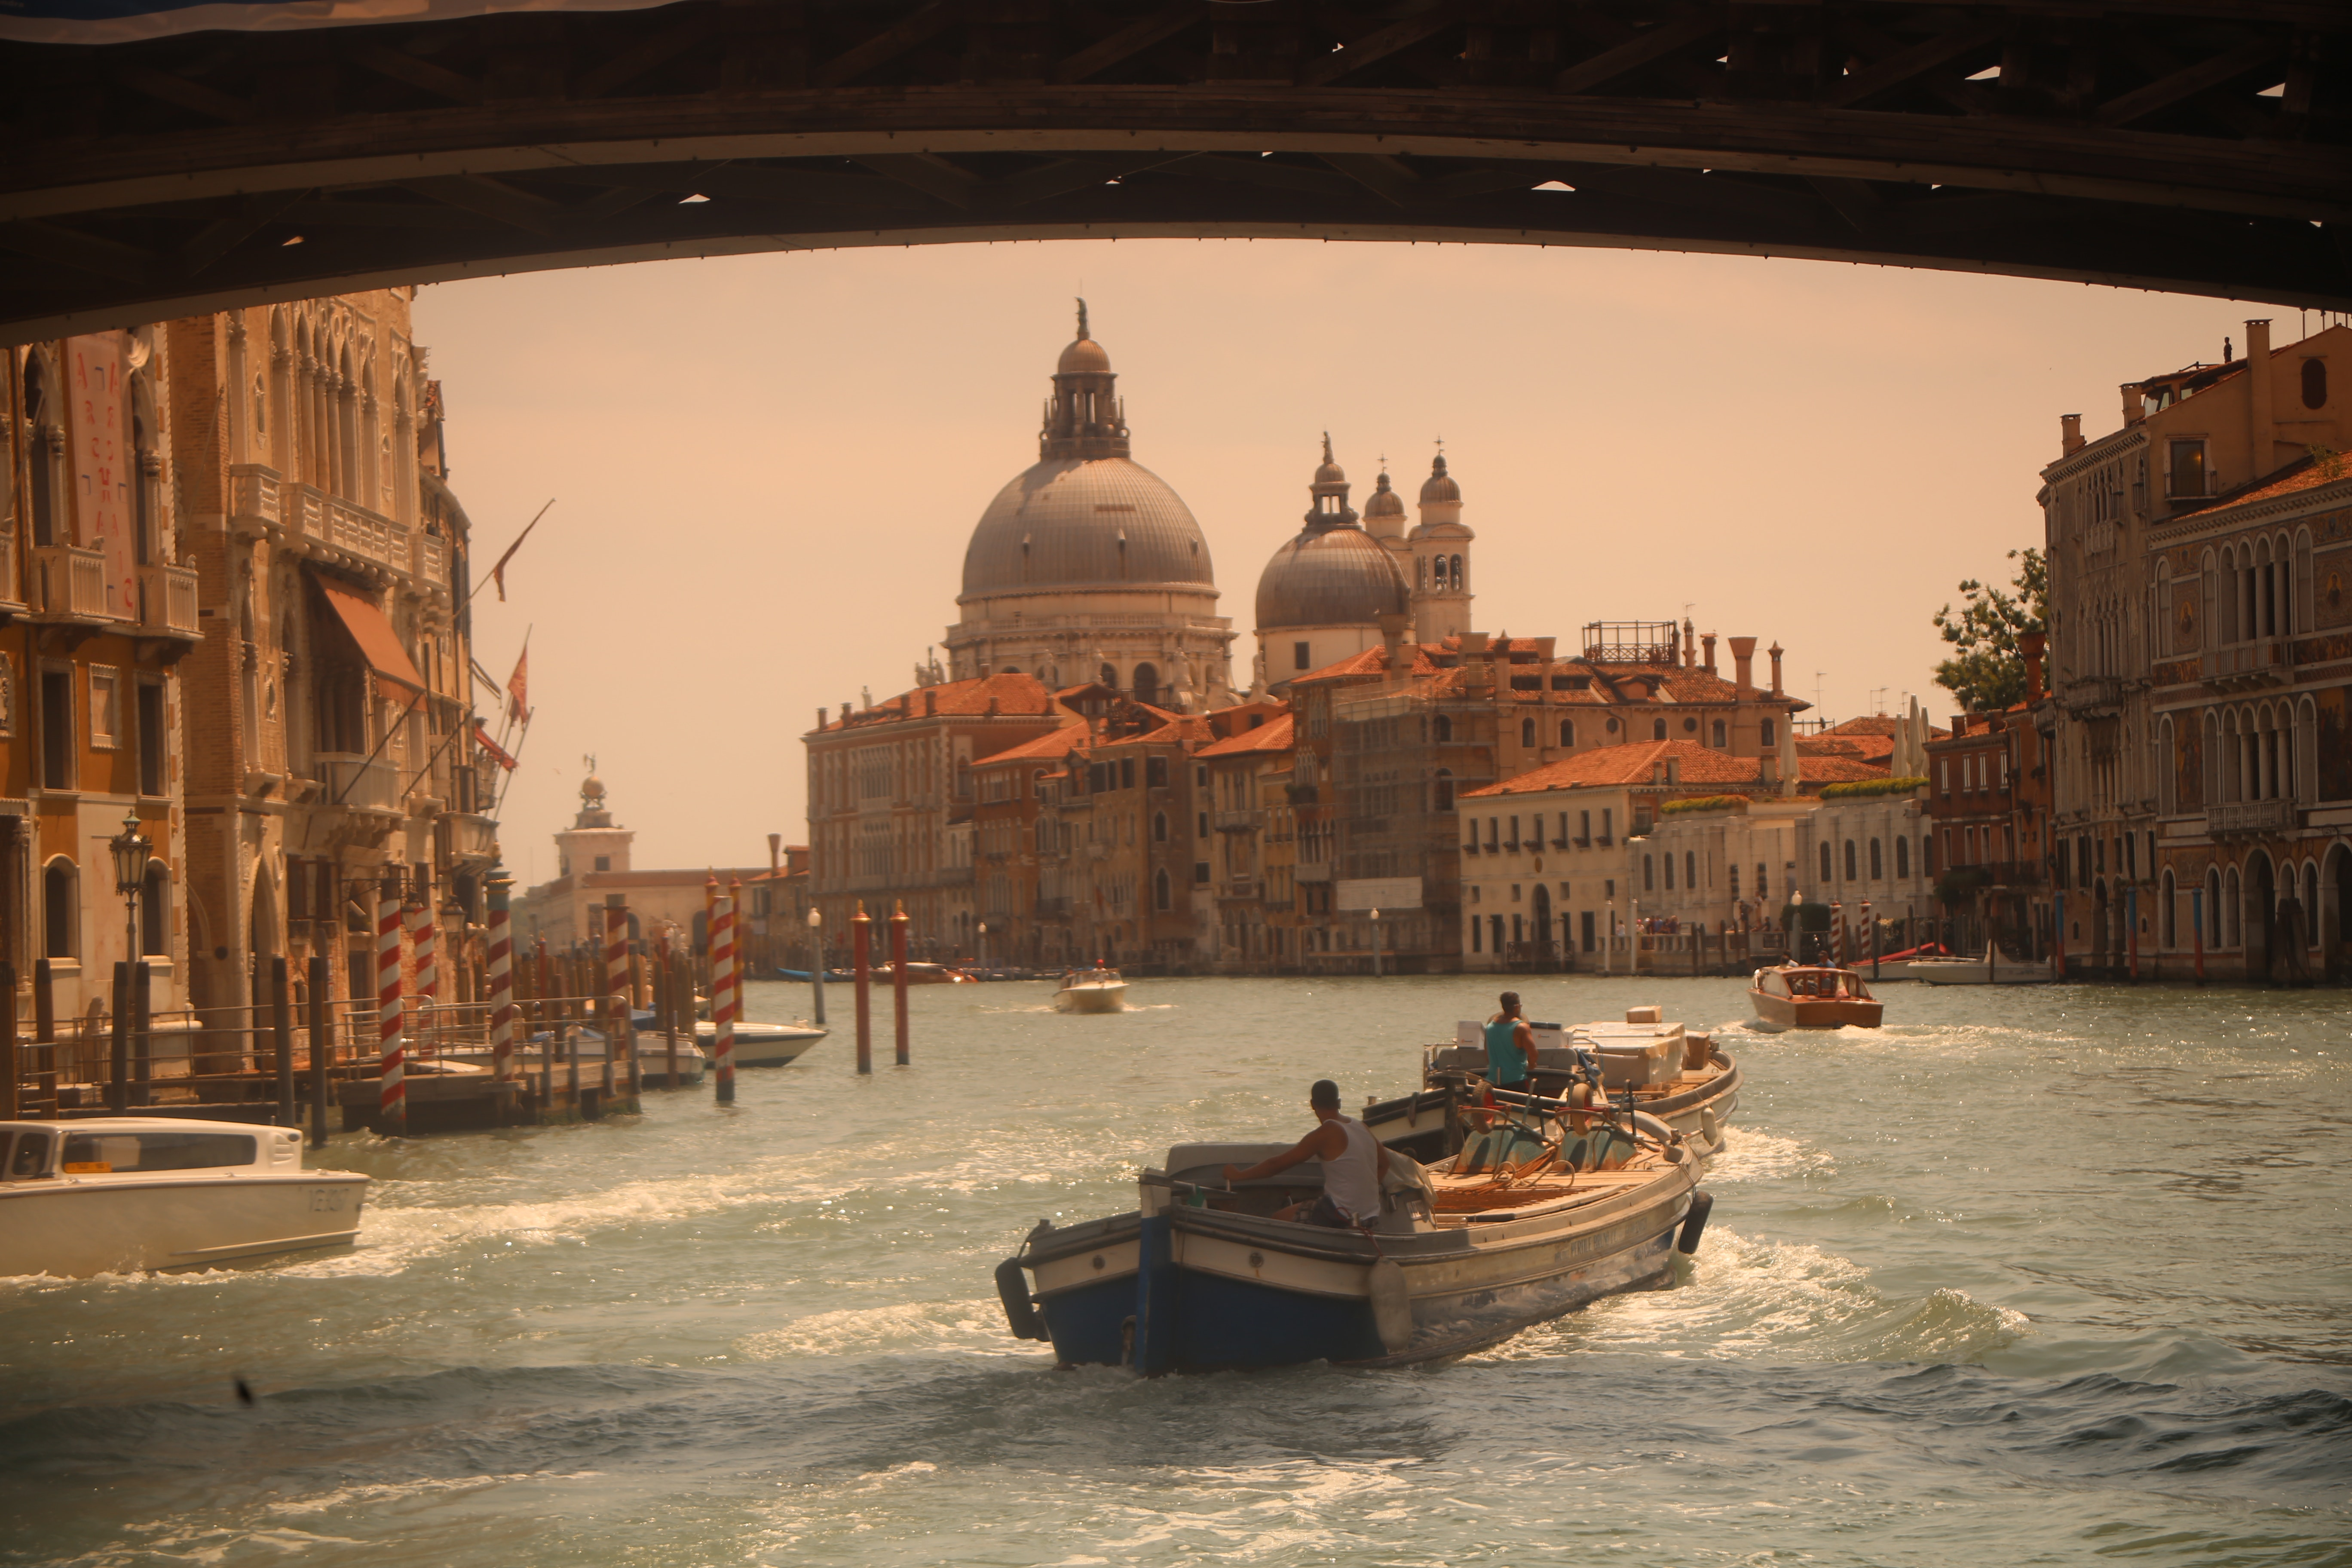 The treasures of the gulf of Venice